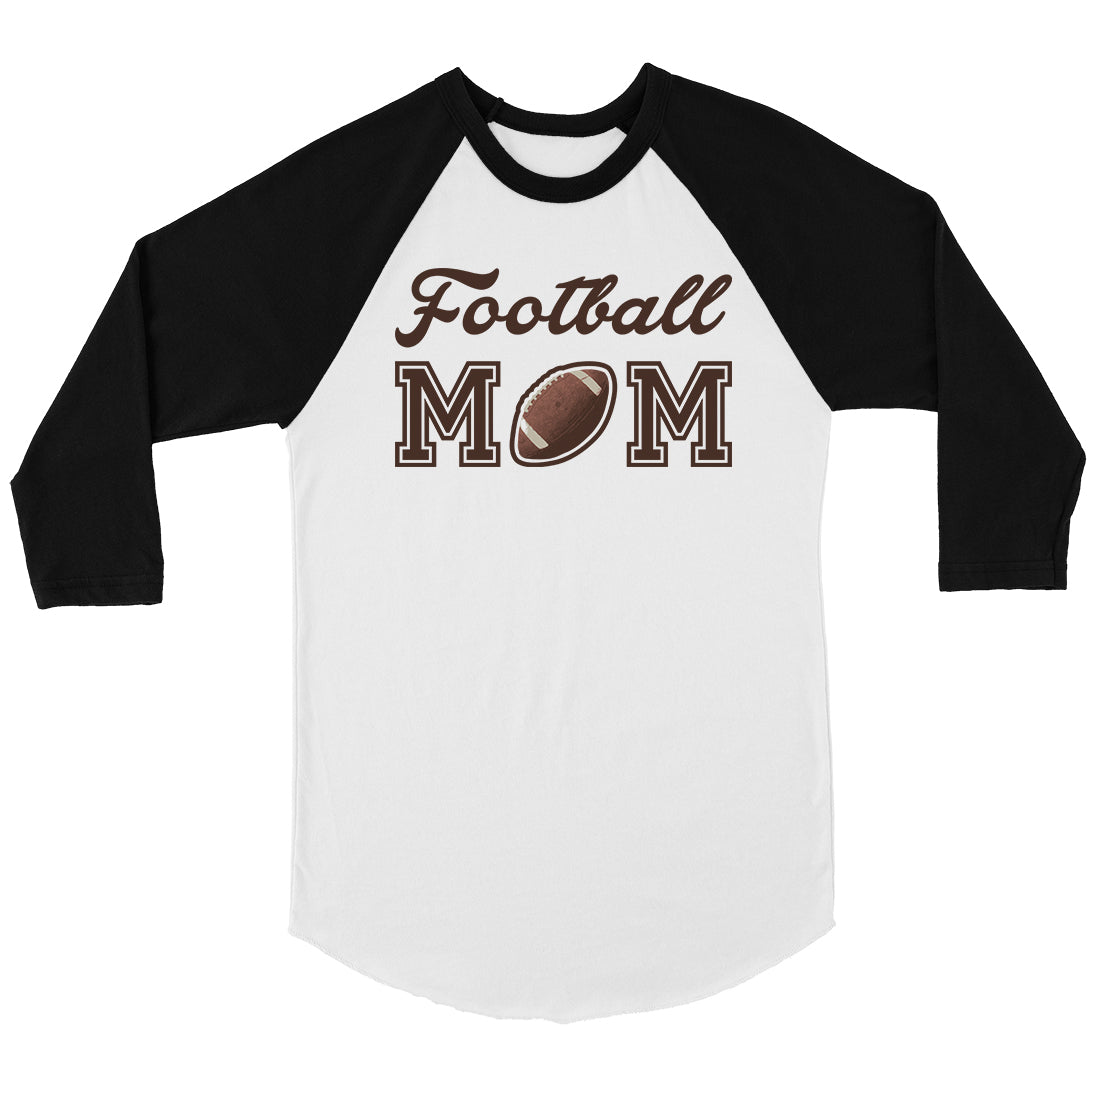 7d9af228 Football Mom Womens Baseball Shirt Funny Mother's Day Gift Ideas ...